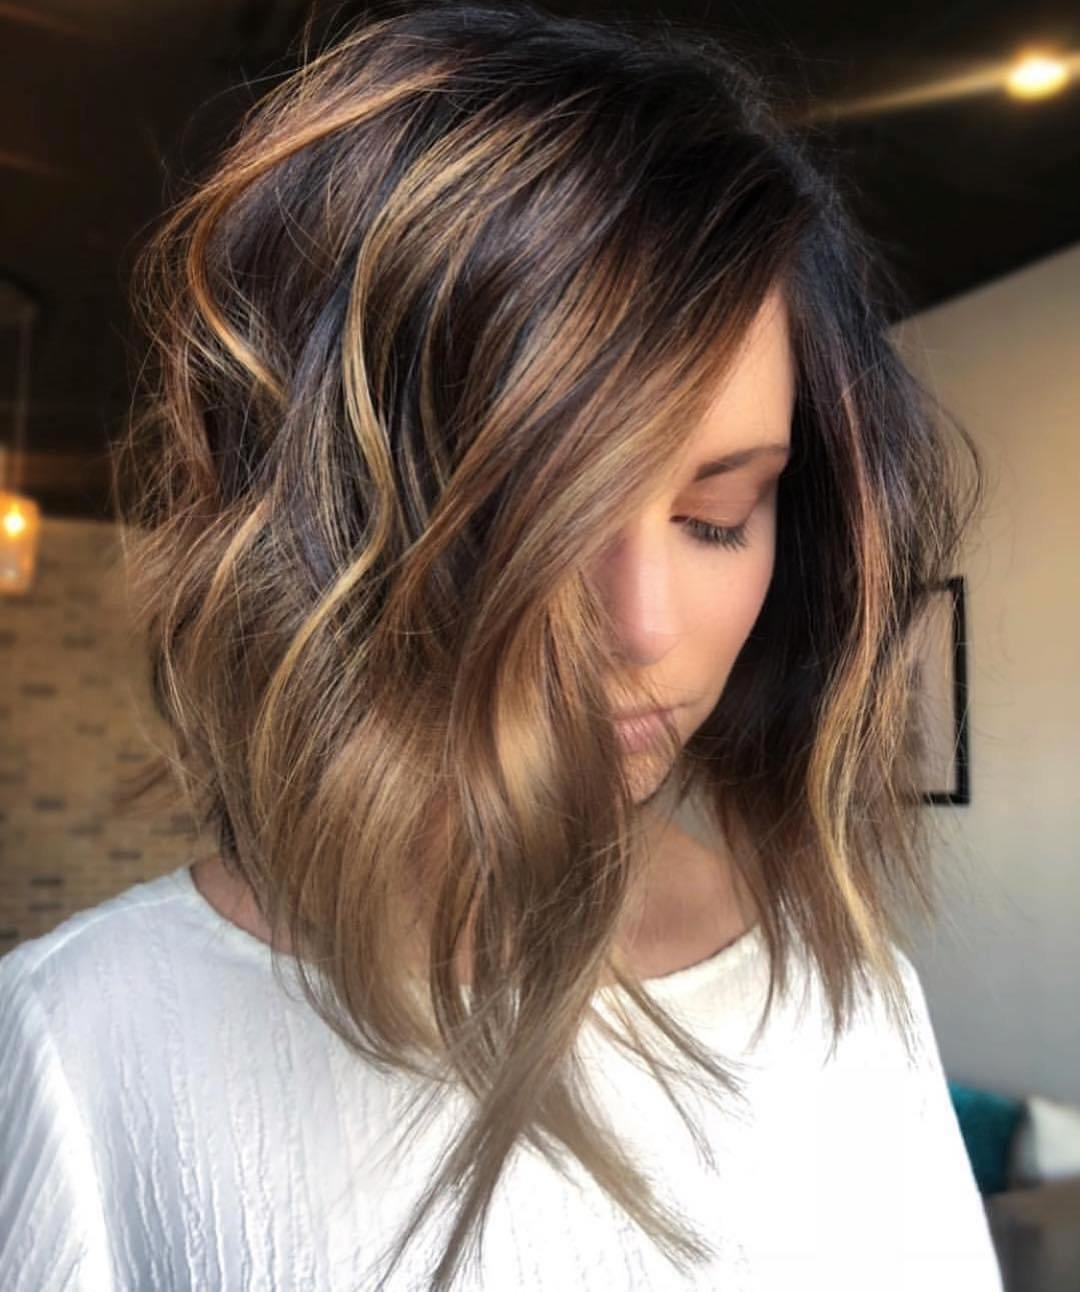 The Best Stylish Ombre Balayage Hairstyles For Shoulder Length Hair 2019 Medium Haircut Popular Haircuts Pictures